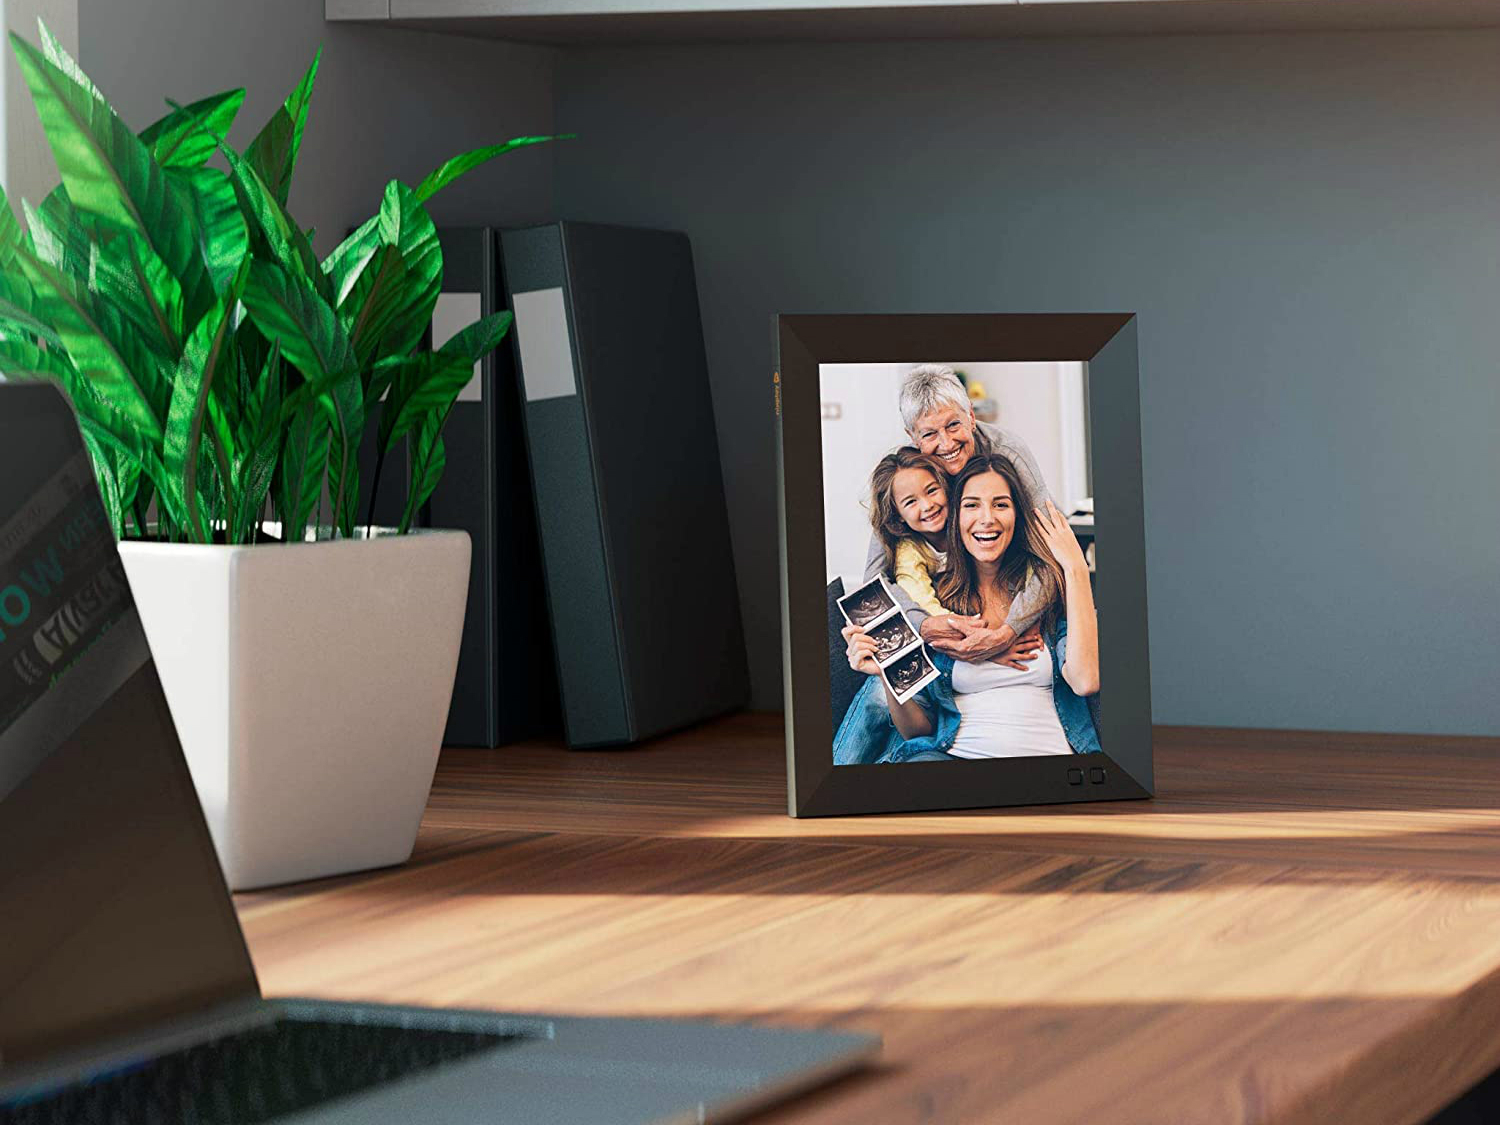 <p>All these Digital Picture Frames Help You Share Photos With Family and Friends thumbnail